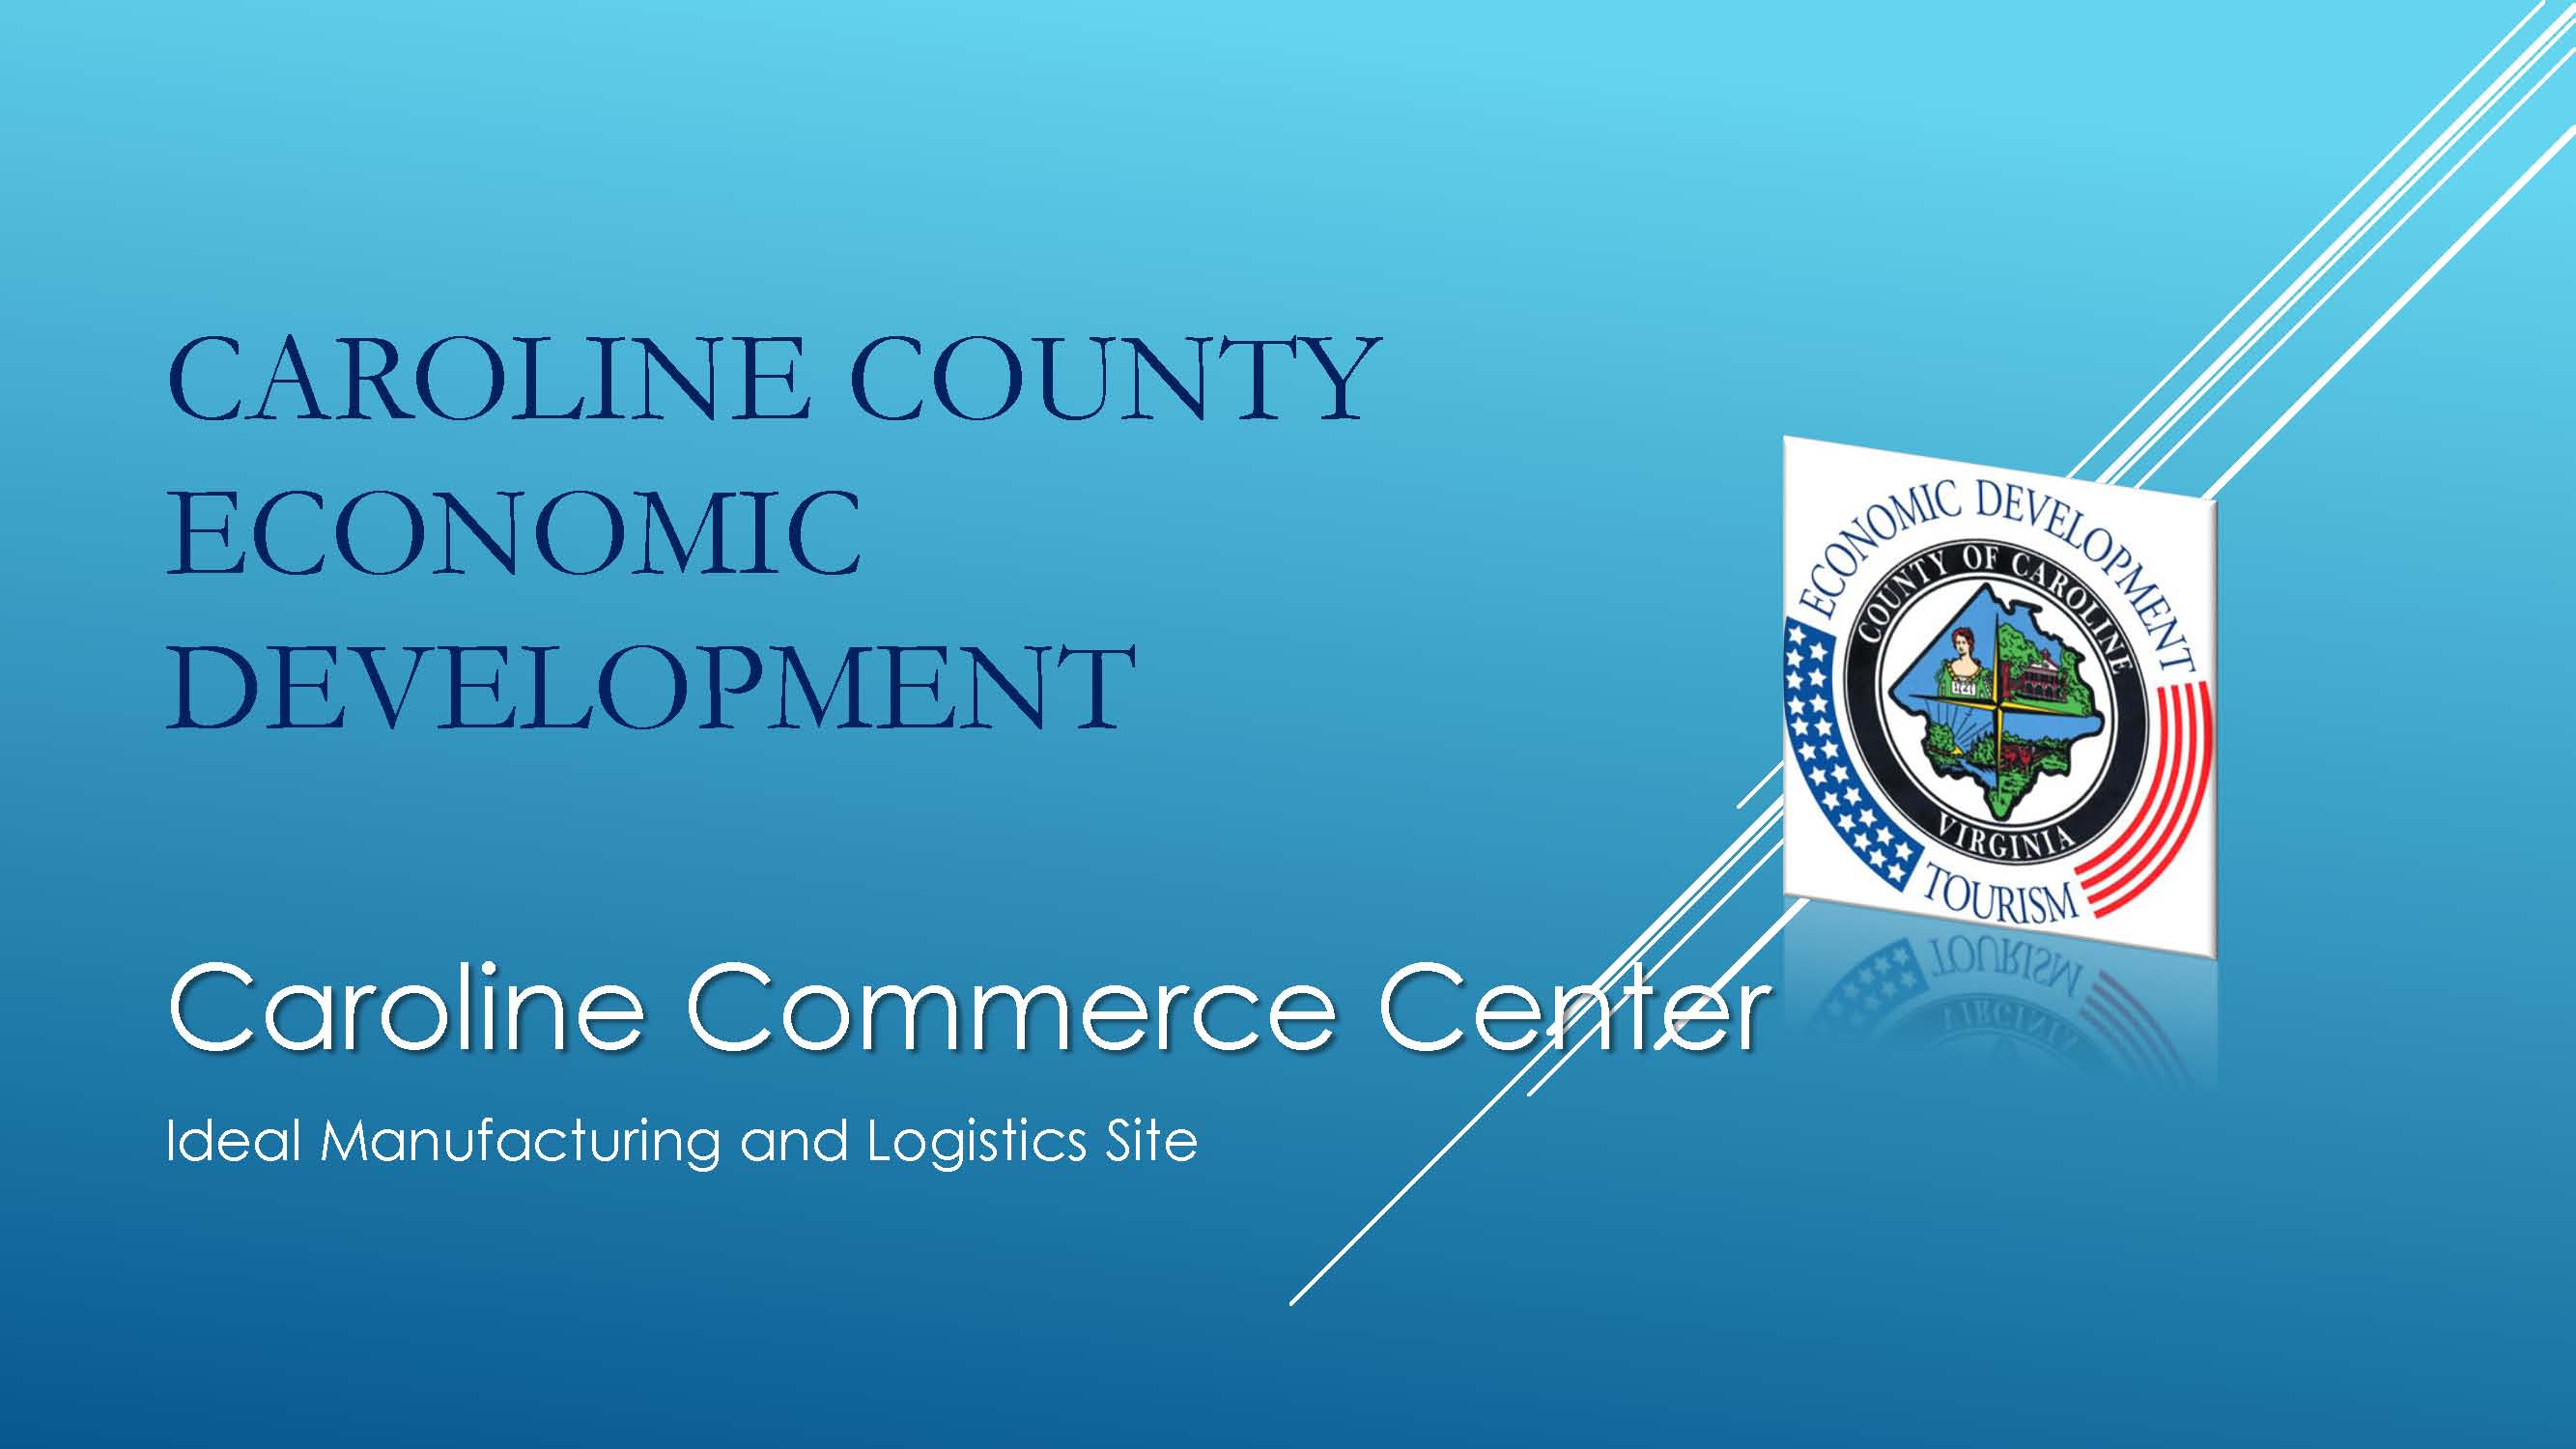 Caroline Commerce Center 3-18_Page_01